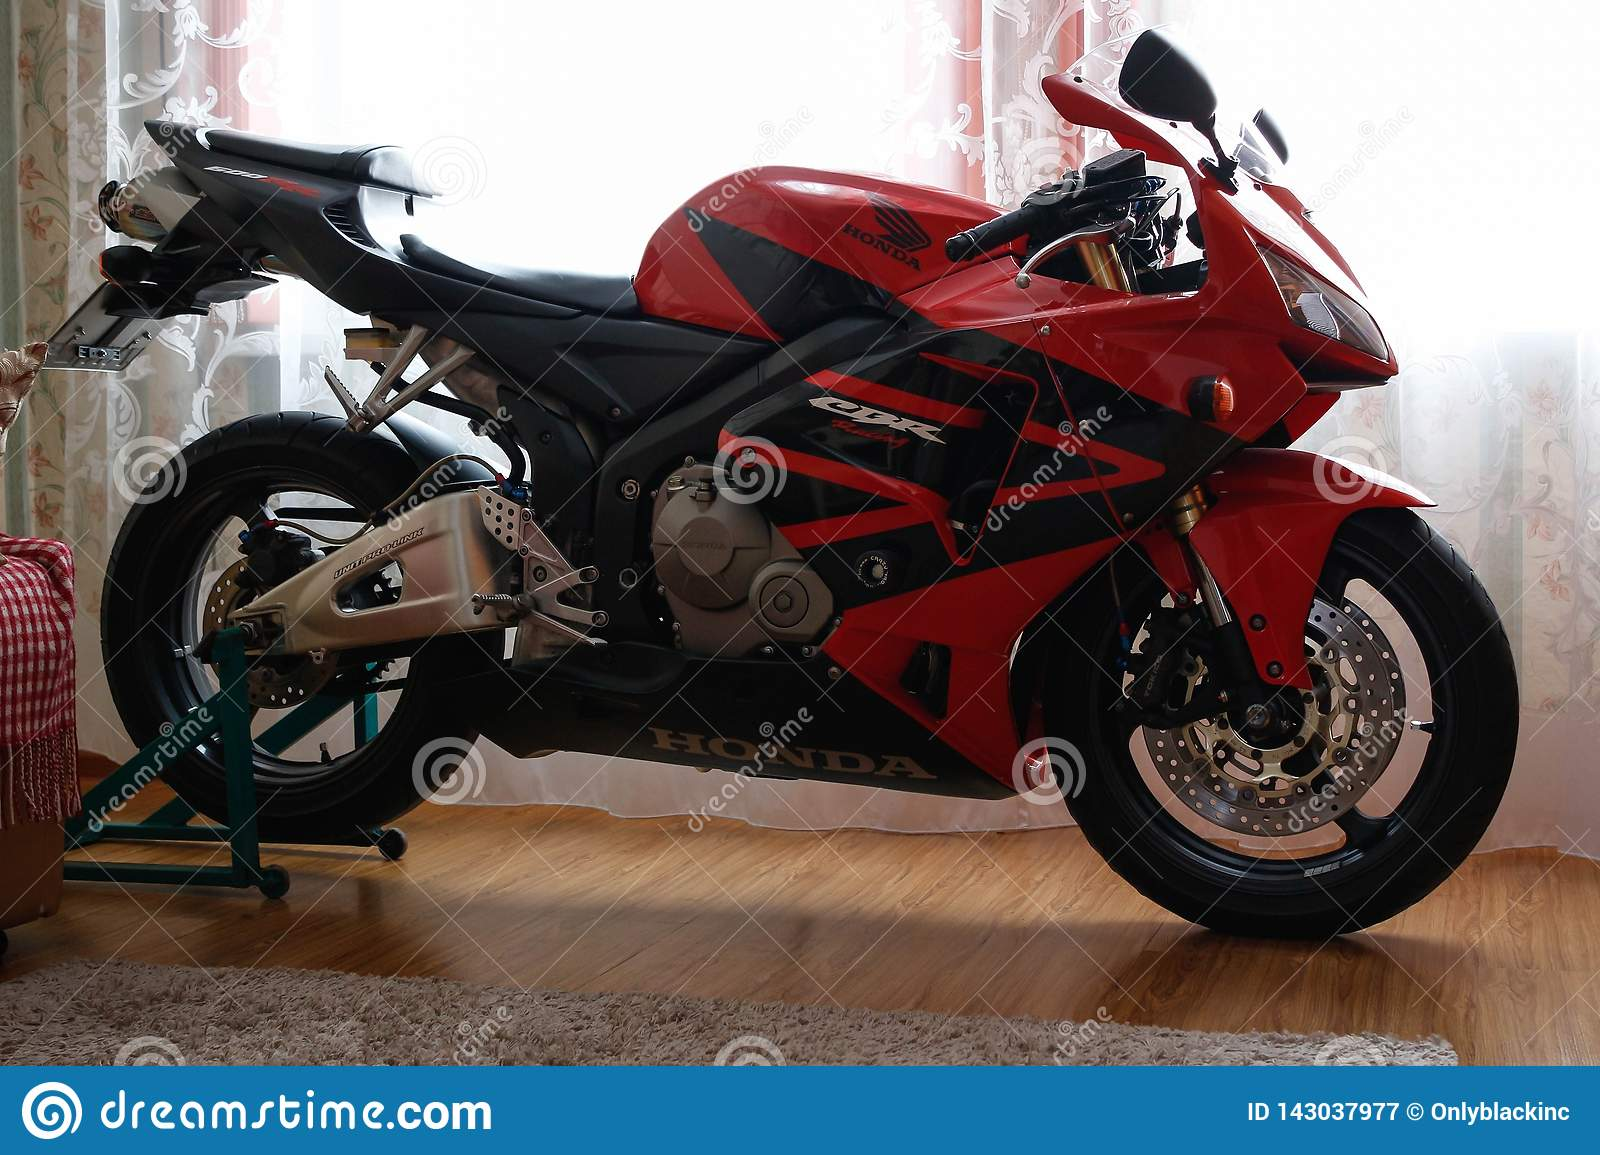 KRASNOYARSK, RUSSIA - March 6, 2019: Red And Black Sportbike